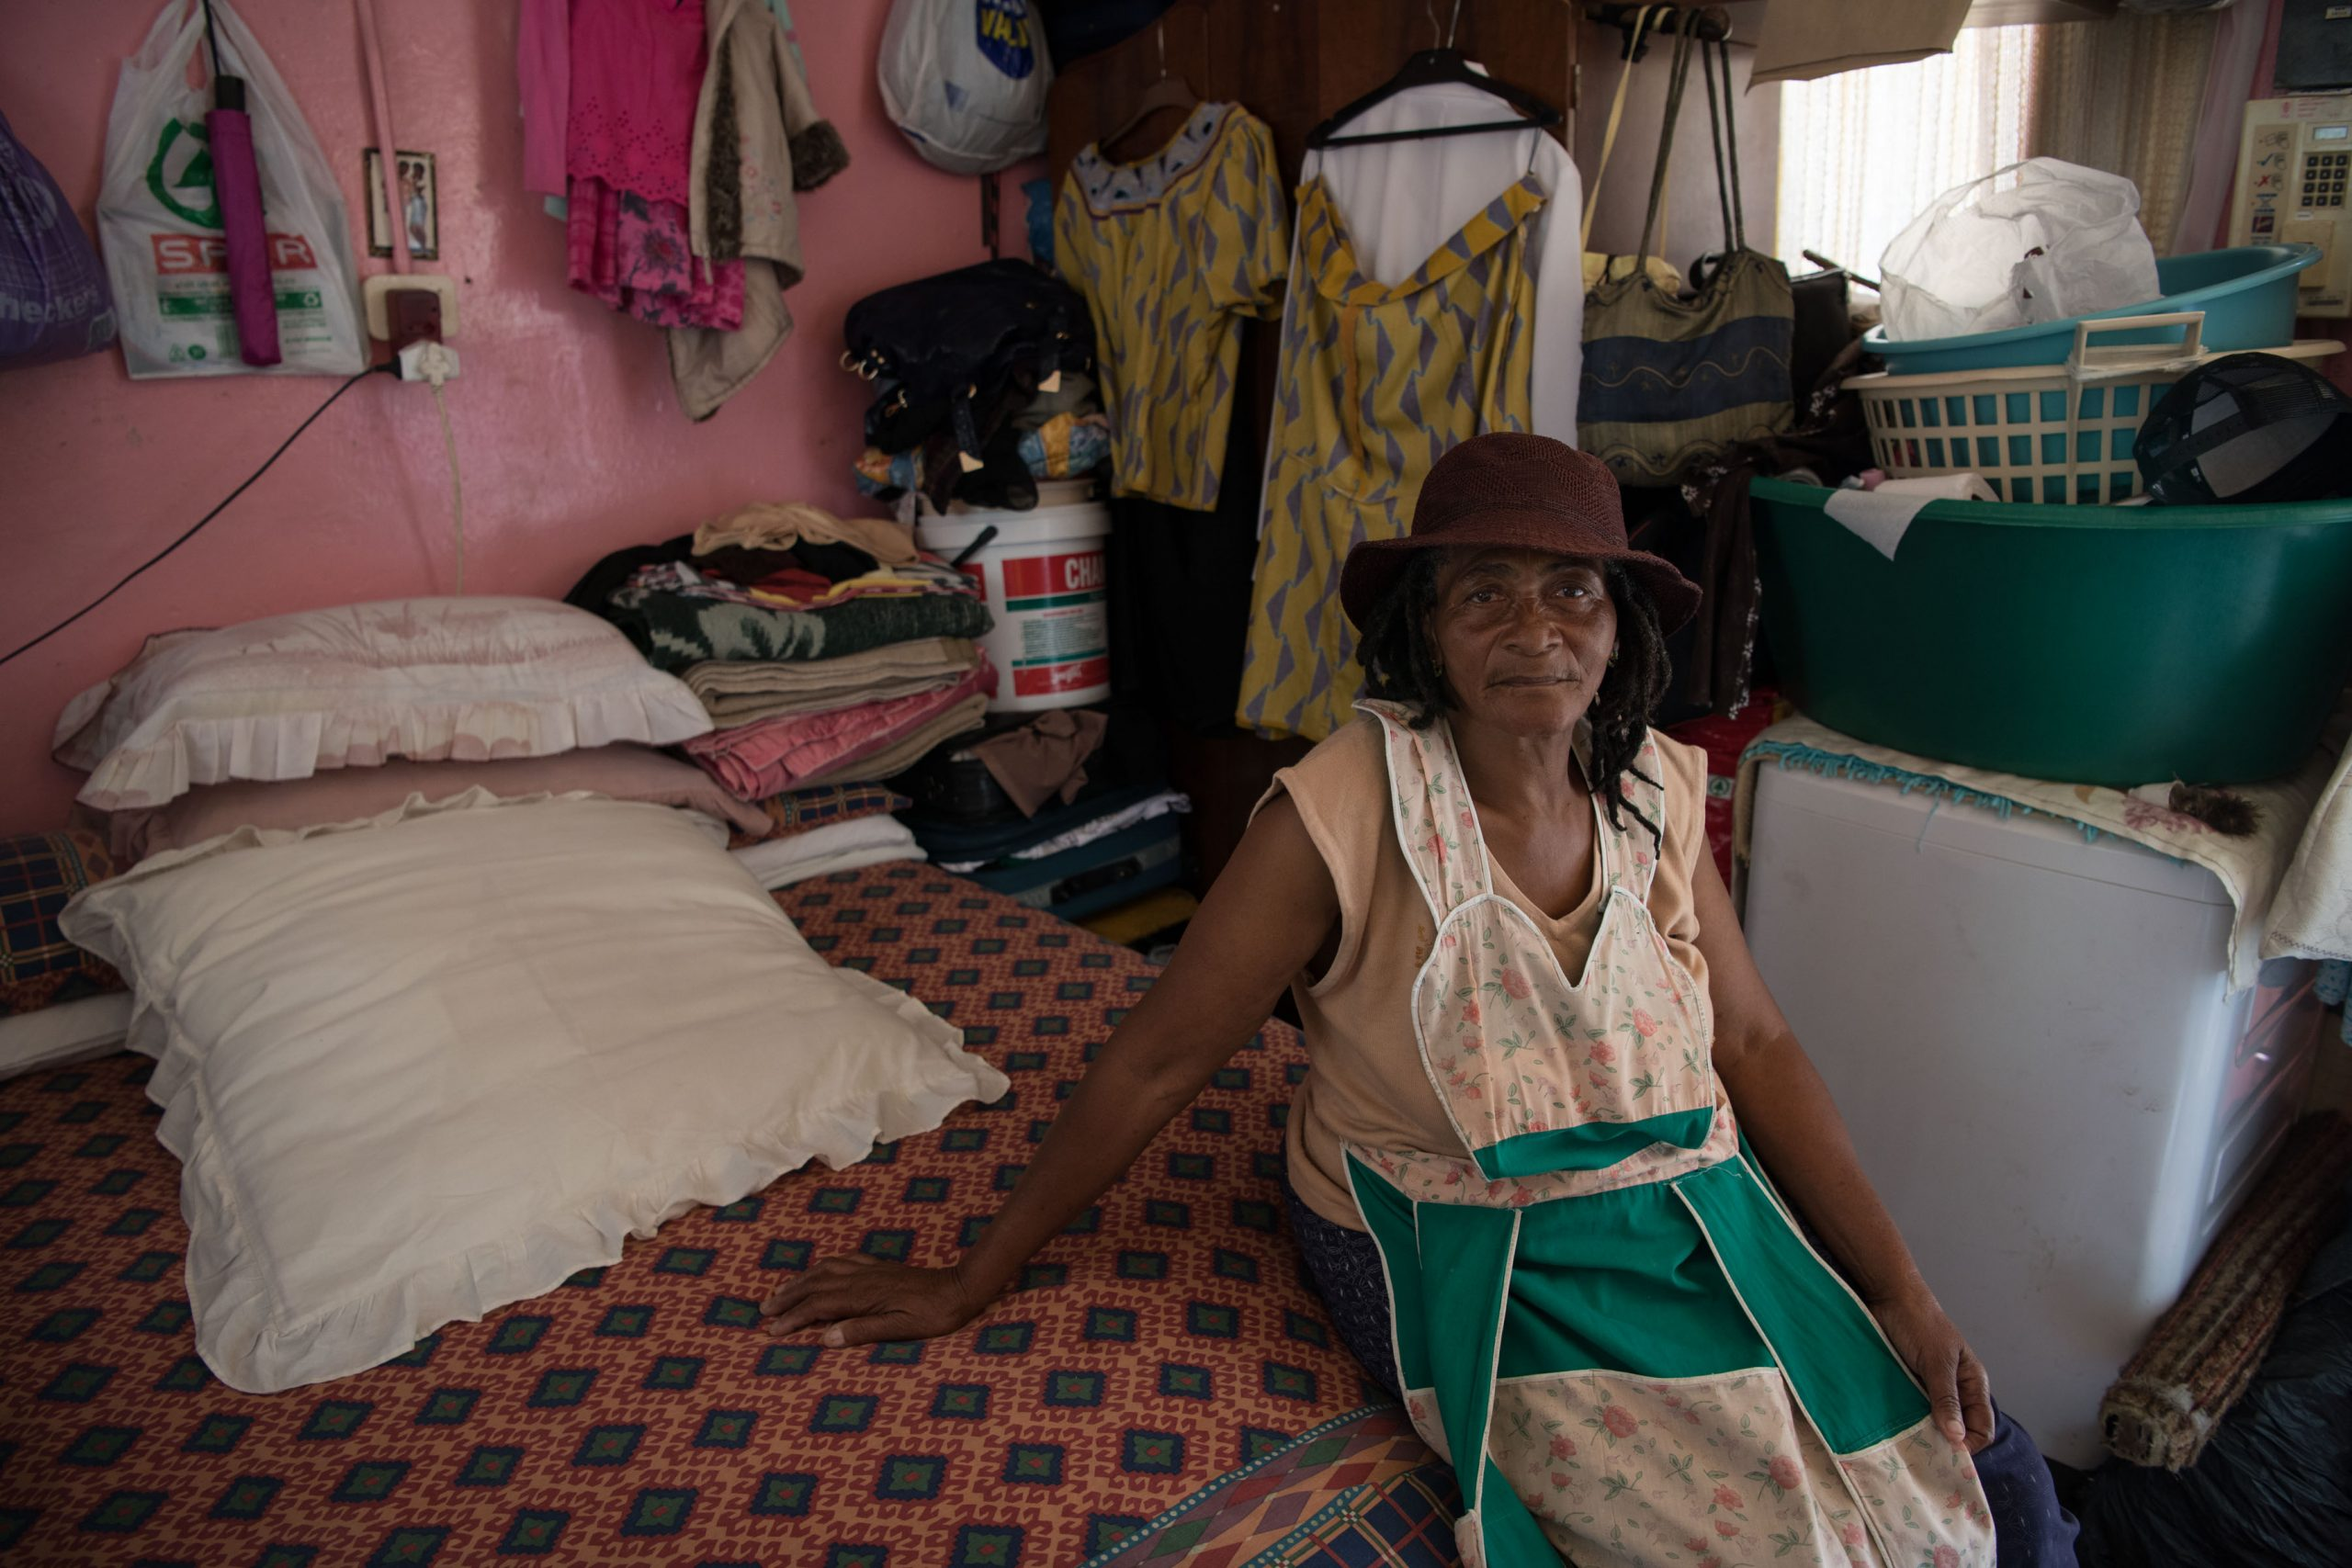 3 February 2020: Vuyiswa Pikoli has been living at Adcock Homes since 1984. She shares her room with her three grandchildren.